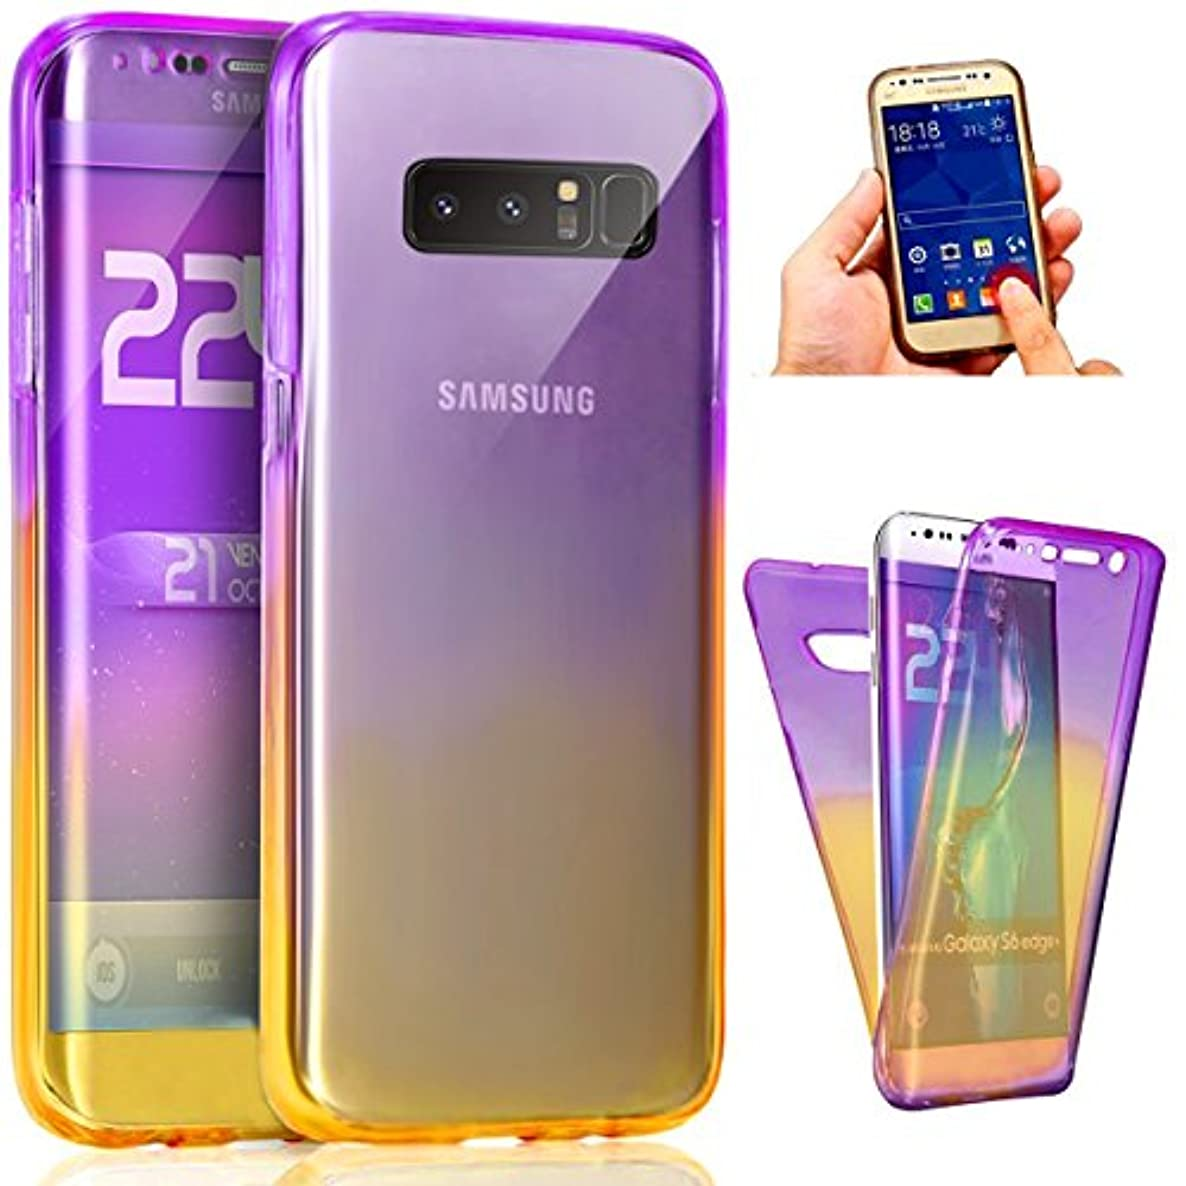 Galaxy Note 8 Case,ikasus Full-Body 360 Coverage Protective Gradient Color Ultra-Slim Scratch-Resistant Front + Back Full Coverage Soft Clear TPU Silicone Rubber Case for Galaxy Note 8,Purple Yellow